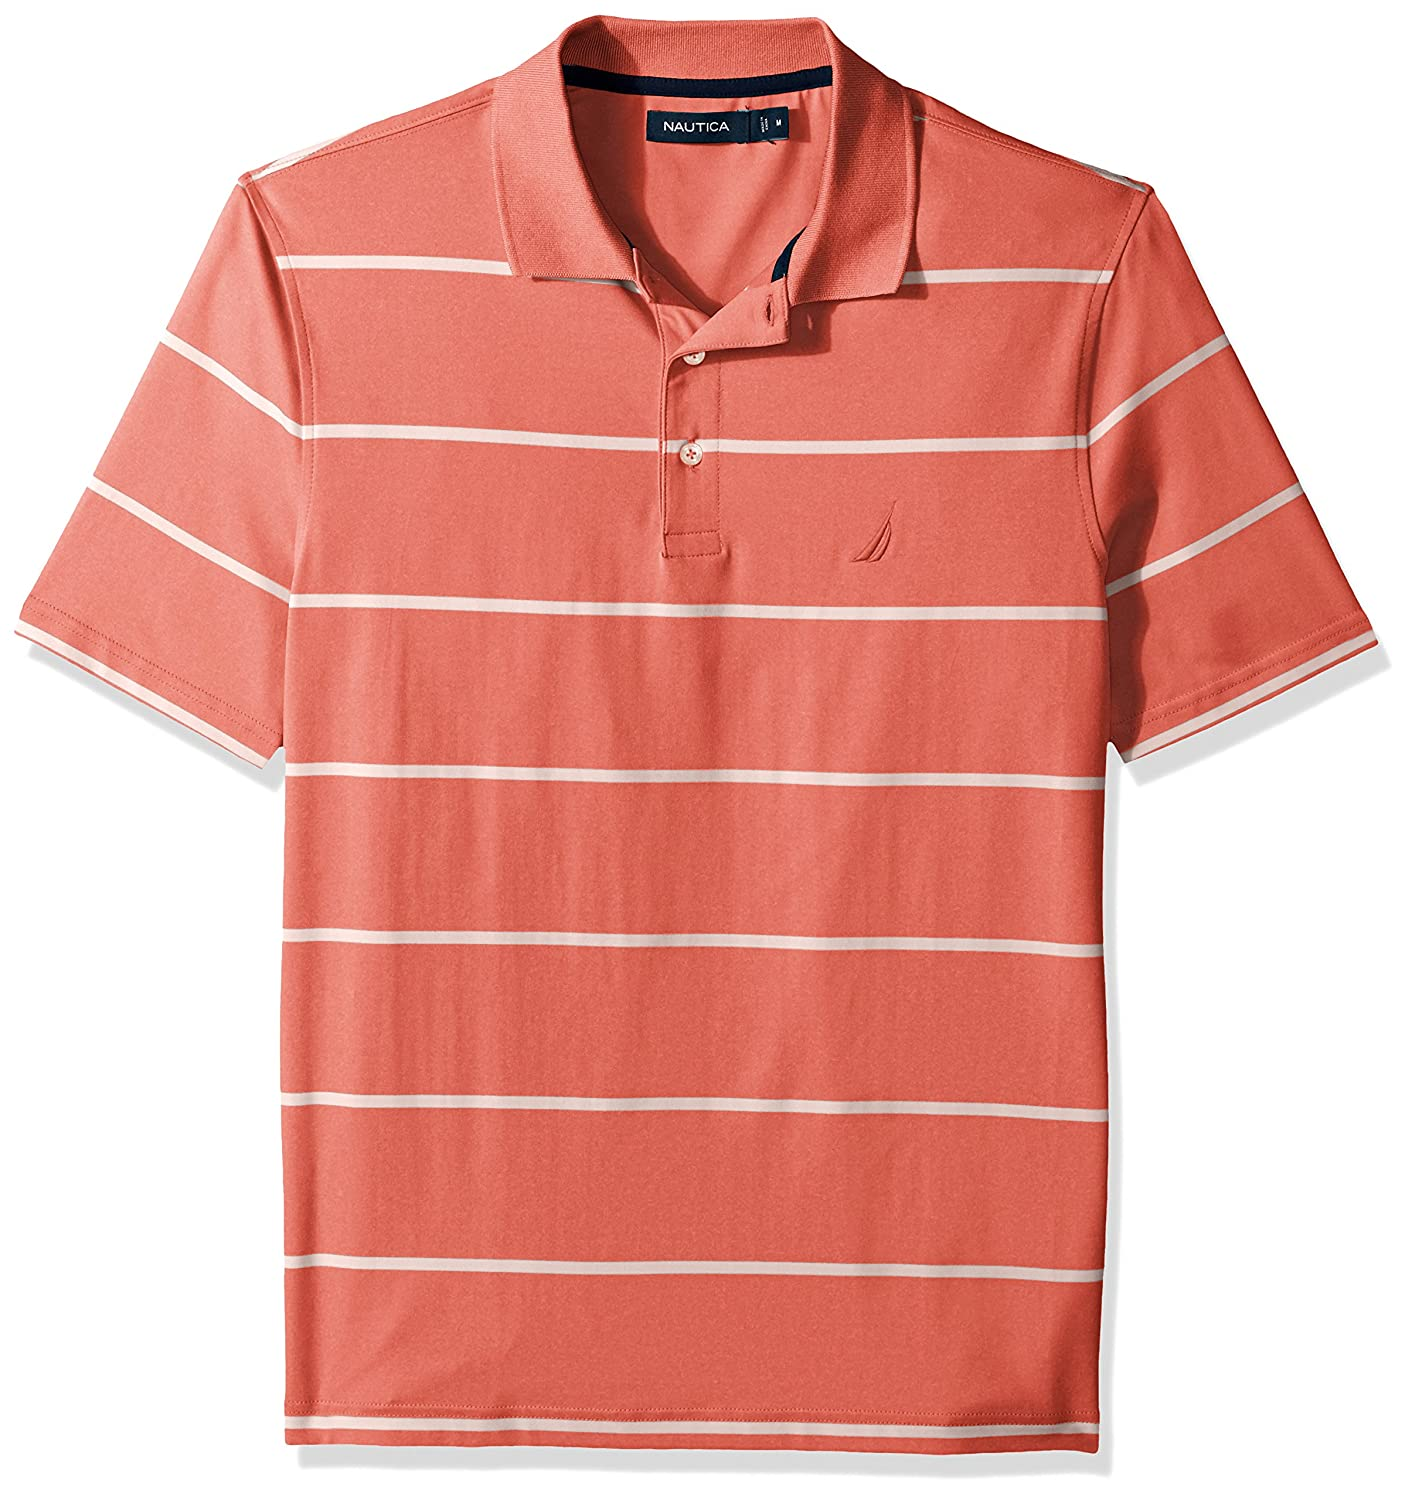 Nautica Mens Short Sleeve Classic Fit Striped Performance Polo